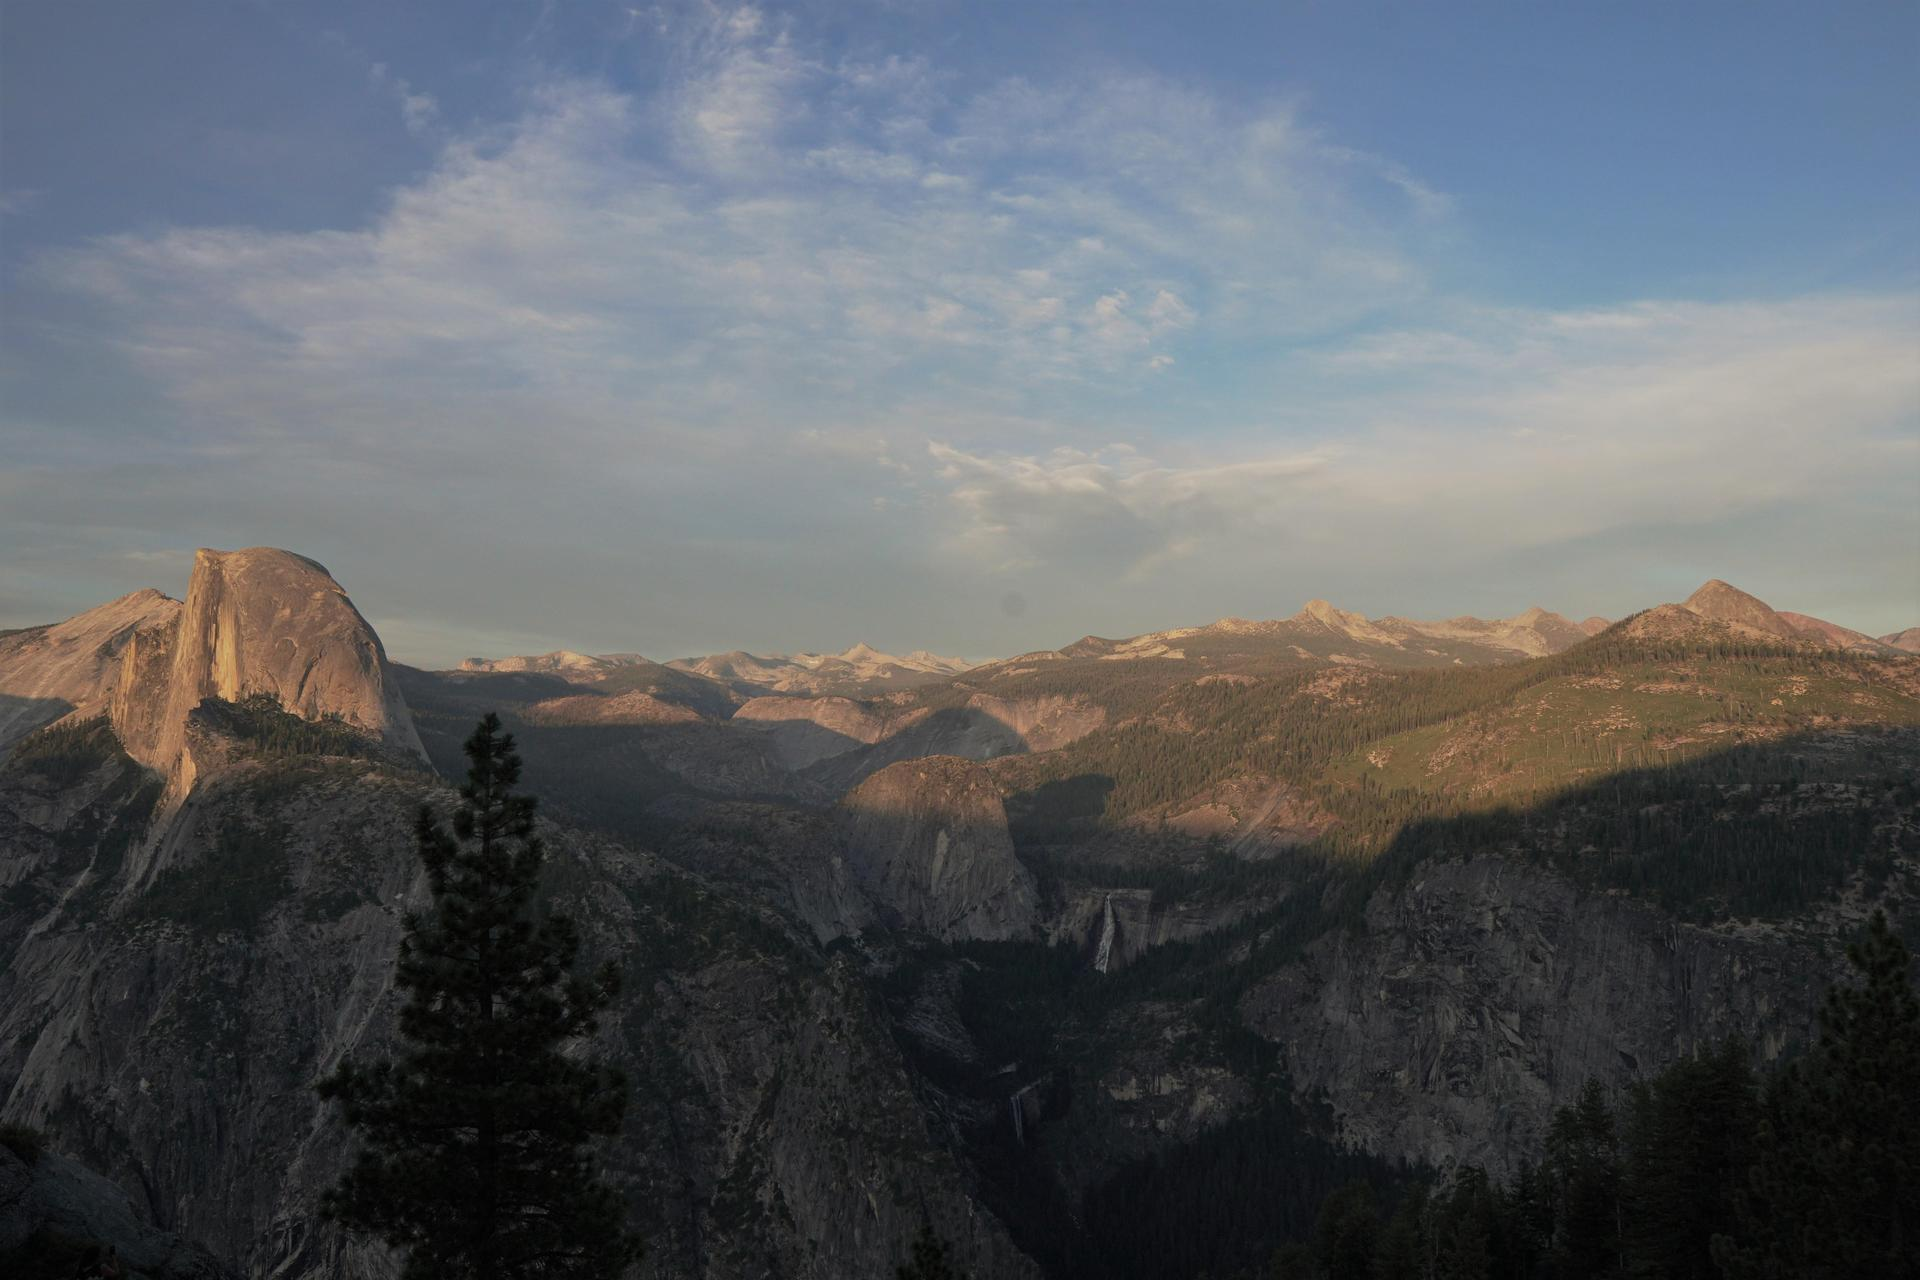 Views from Yosemite National Park